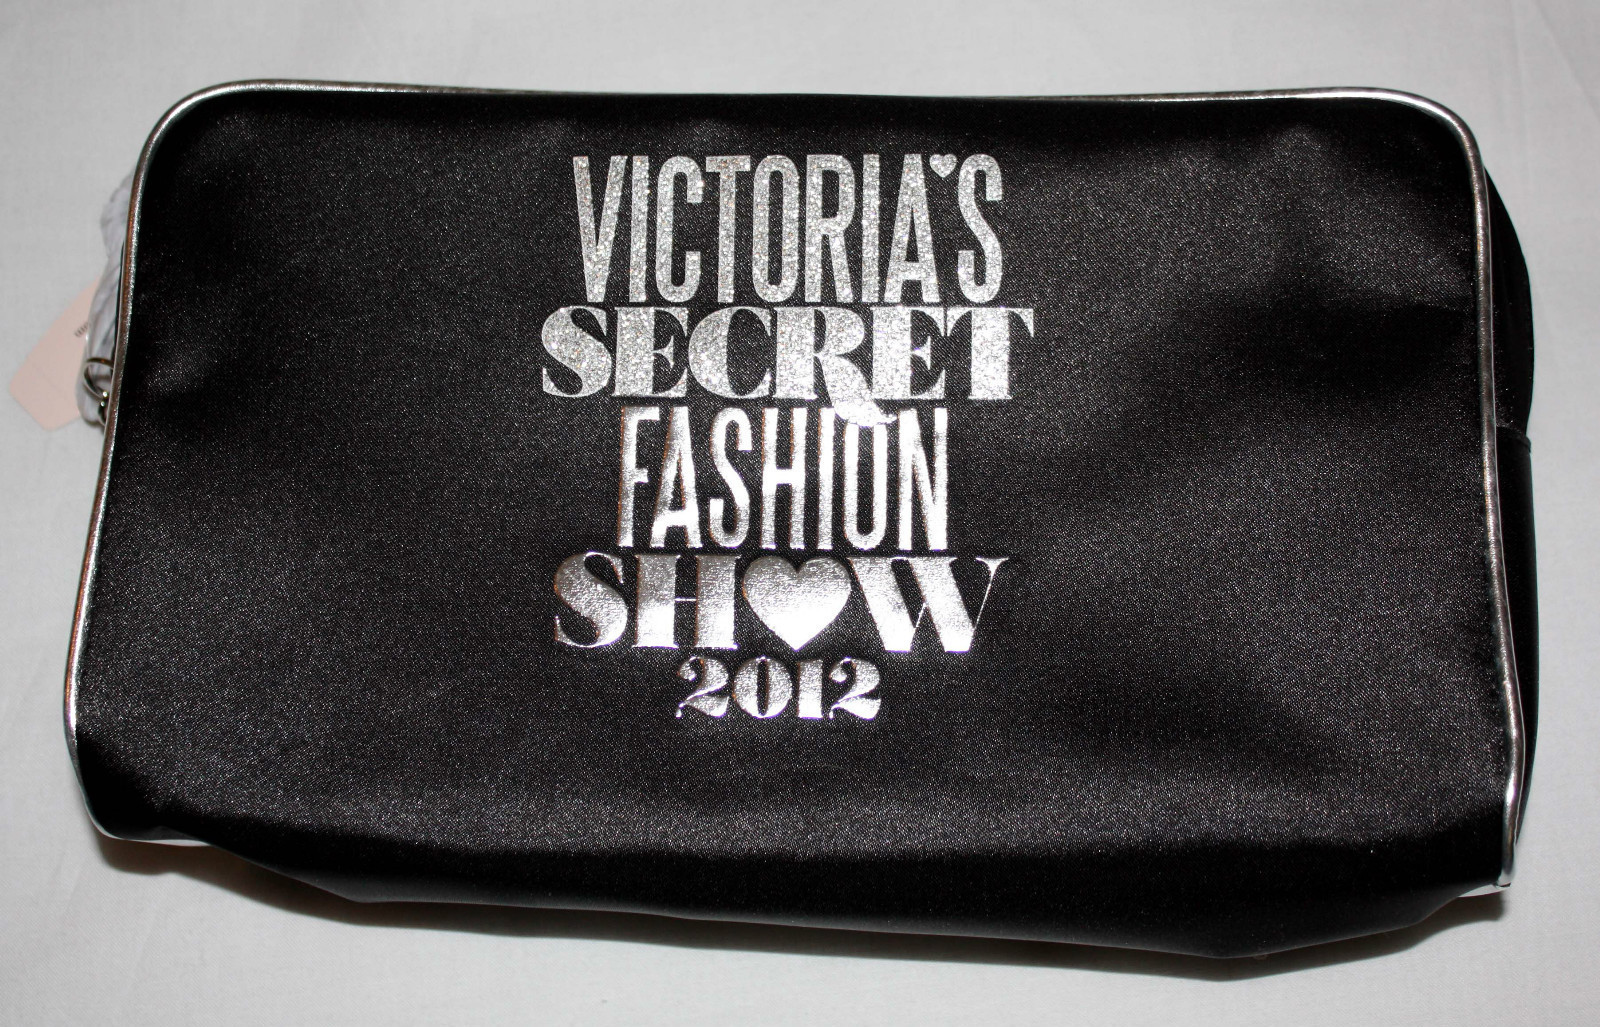 Victoria's Secret FASHION SHOW 2012 Cosmetic Bag